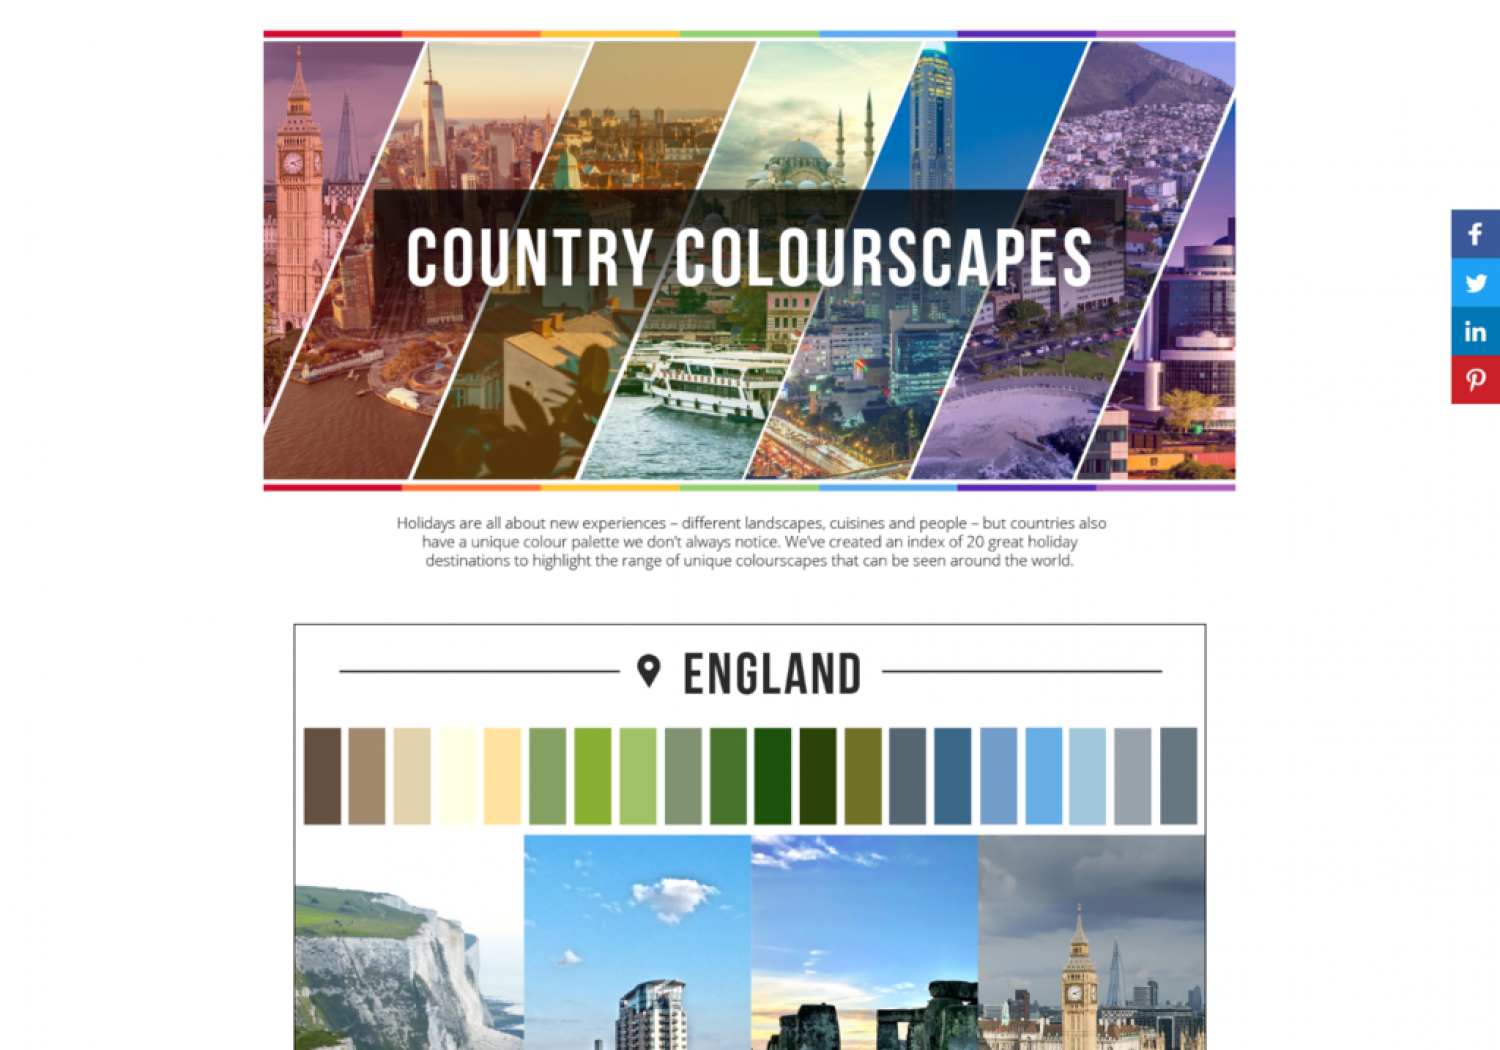 Country Colourscapes Infographic